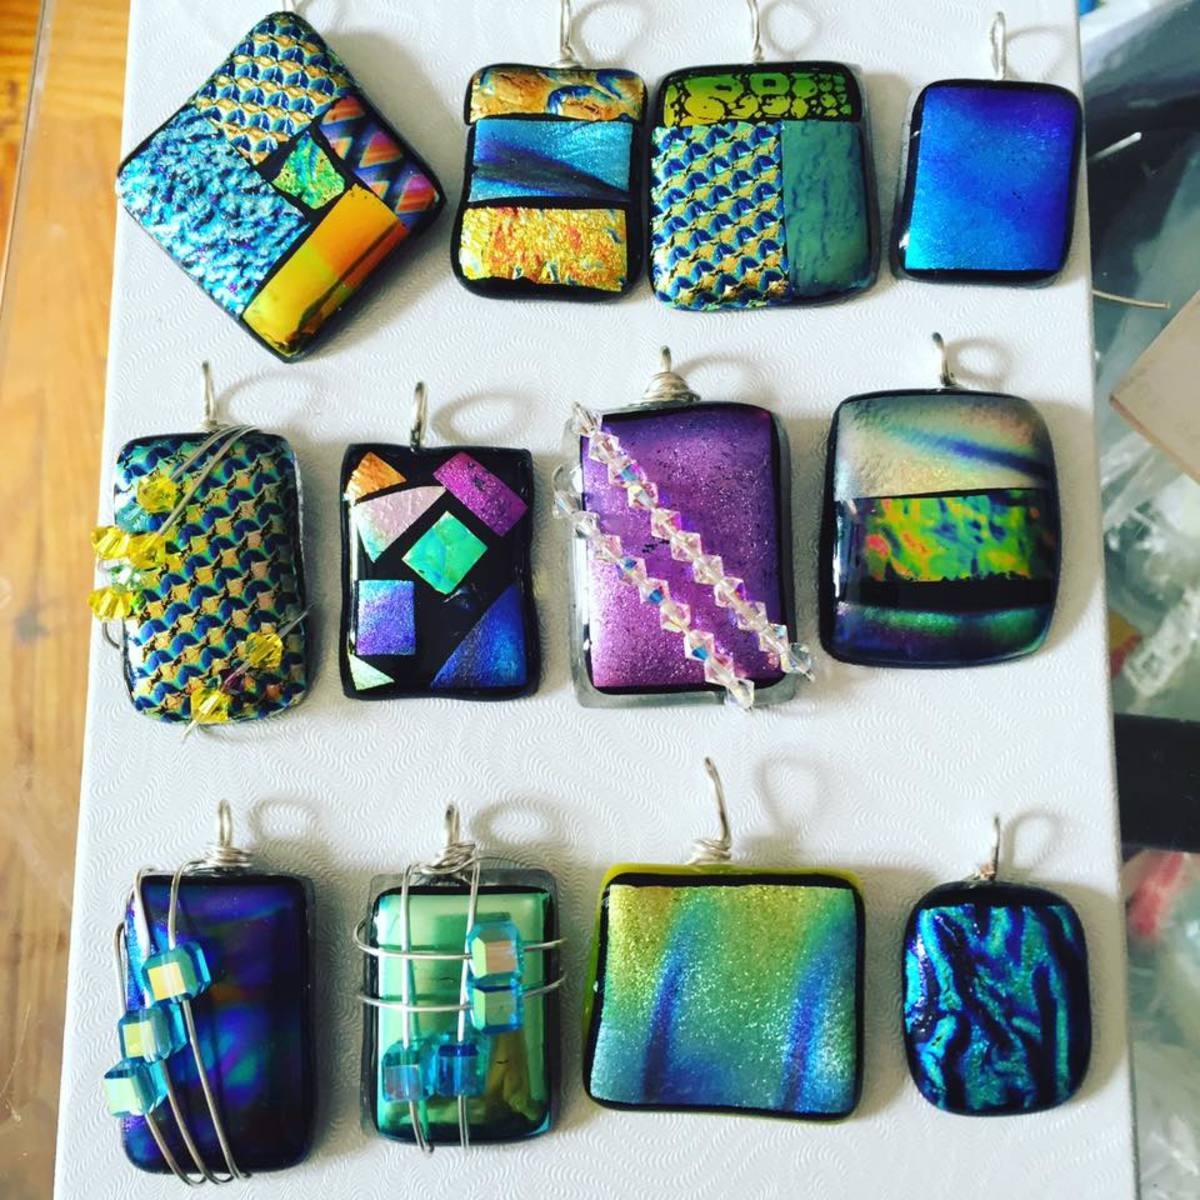 A few samples of my fused glass pendants!